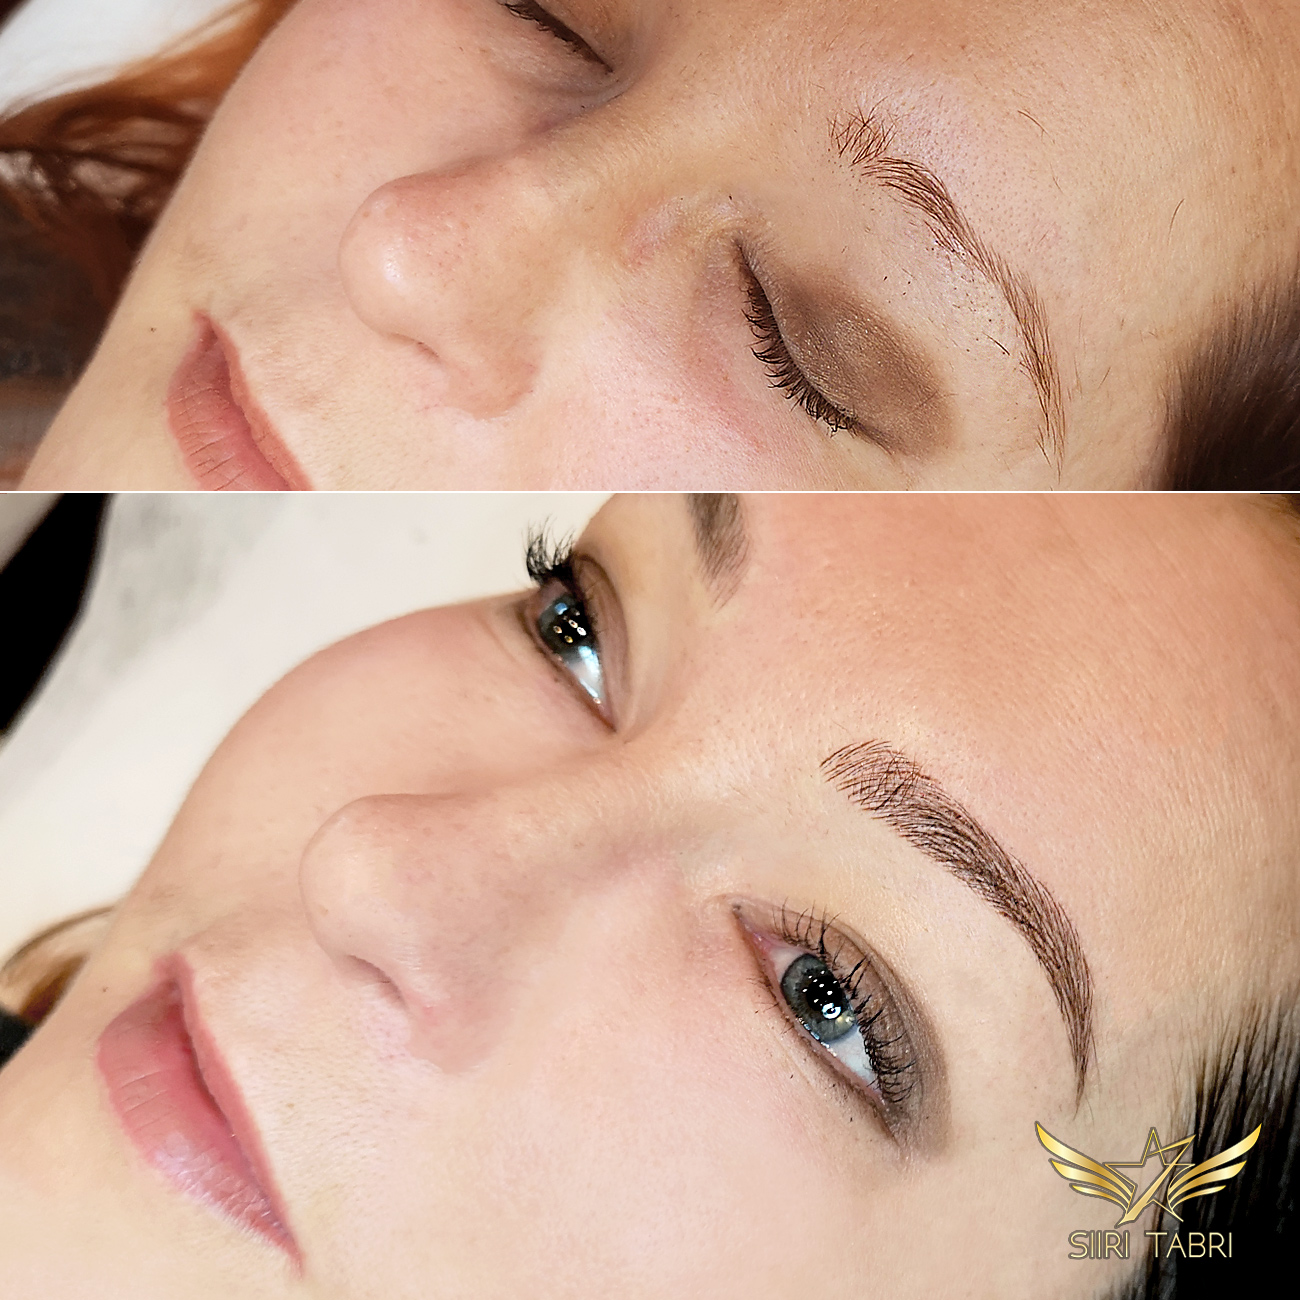 Light microblading. Another superb change with the Light microblading technique.